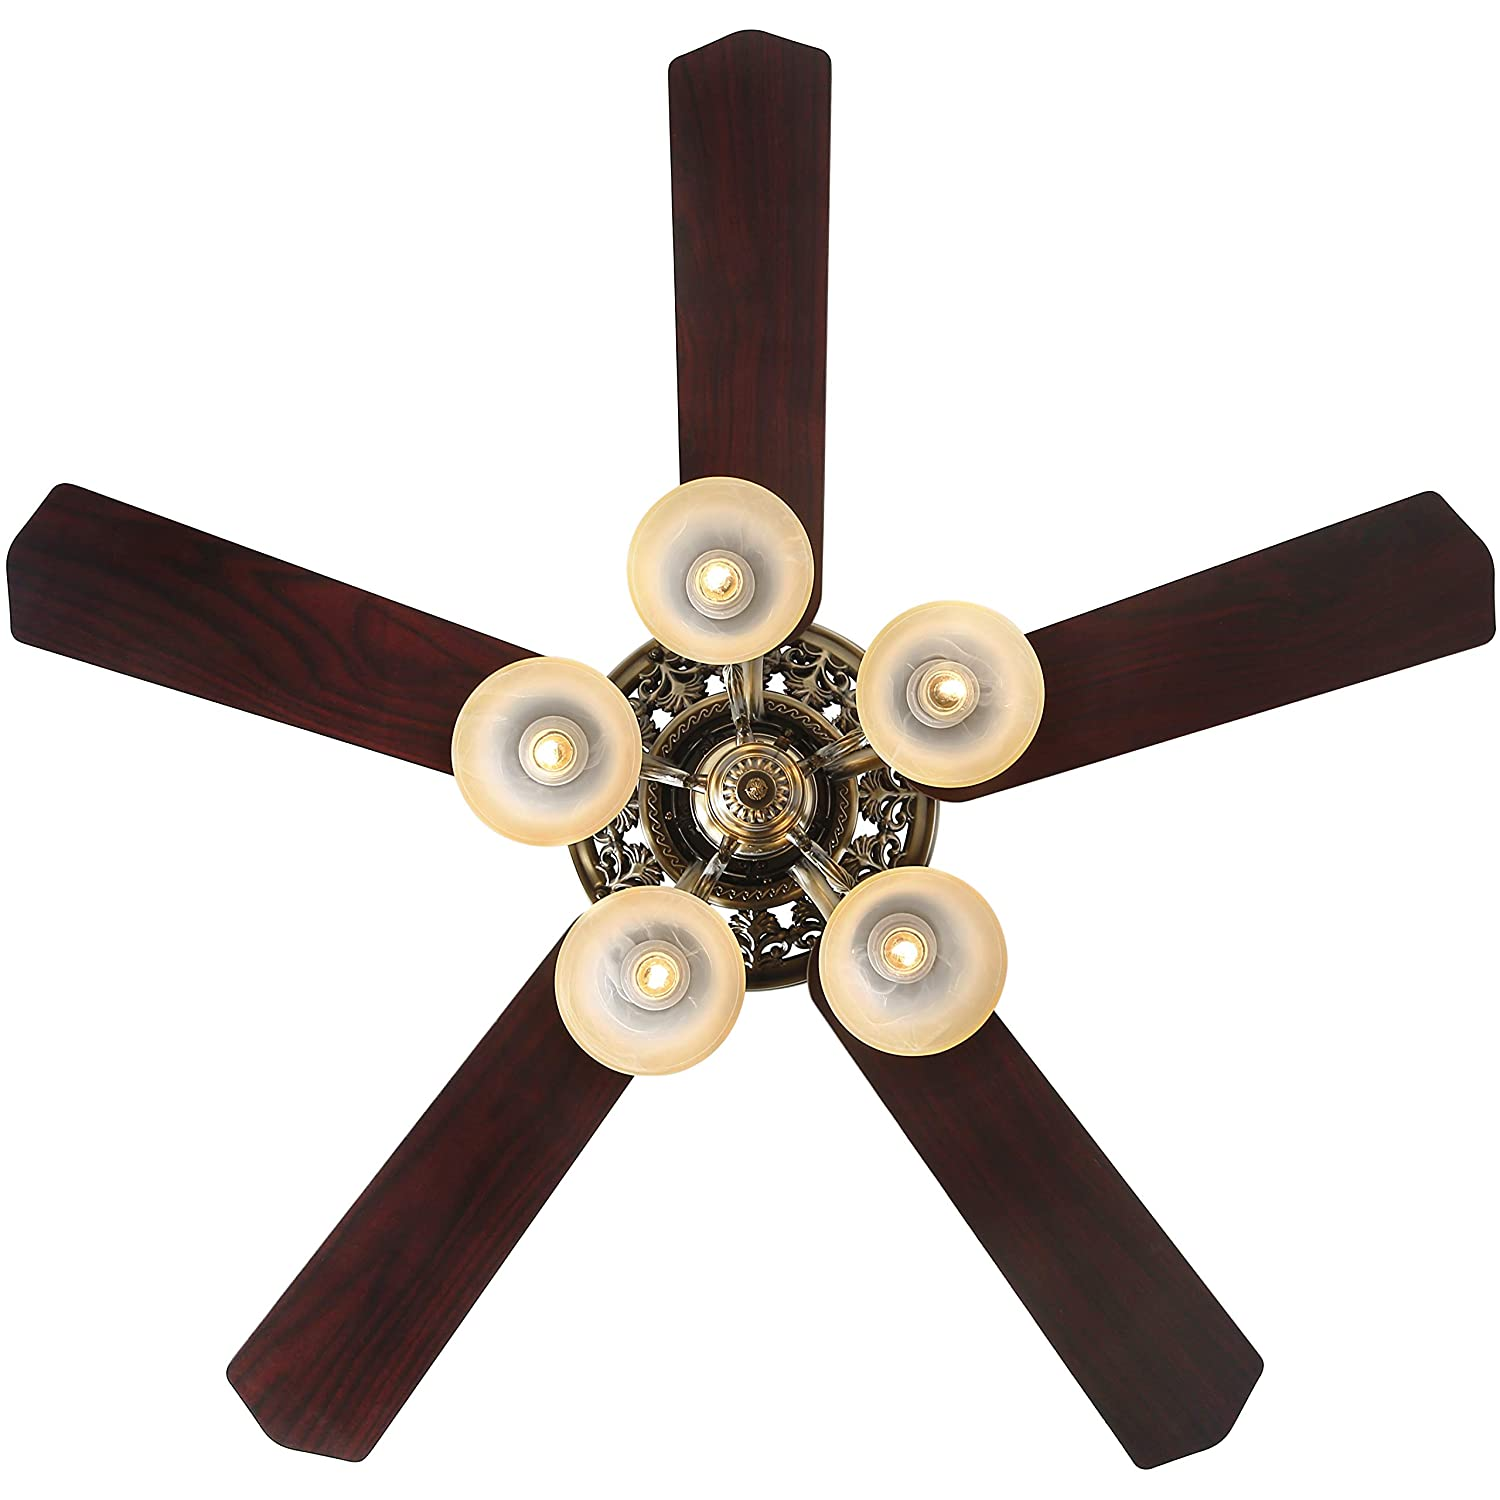 Indoor Ceiling Fan Light Fixtures New Bronze Finxin New Bronze Remote Led 52 Ceiling Fans For